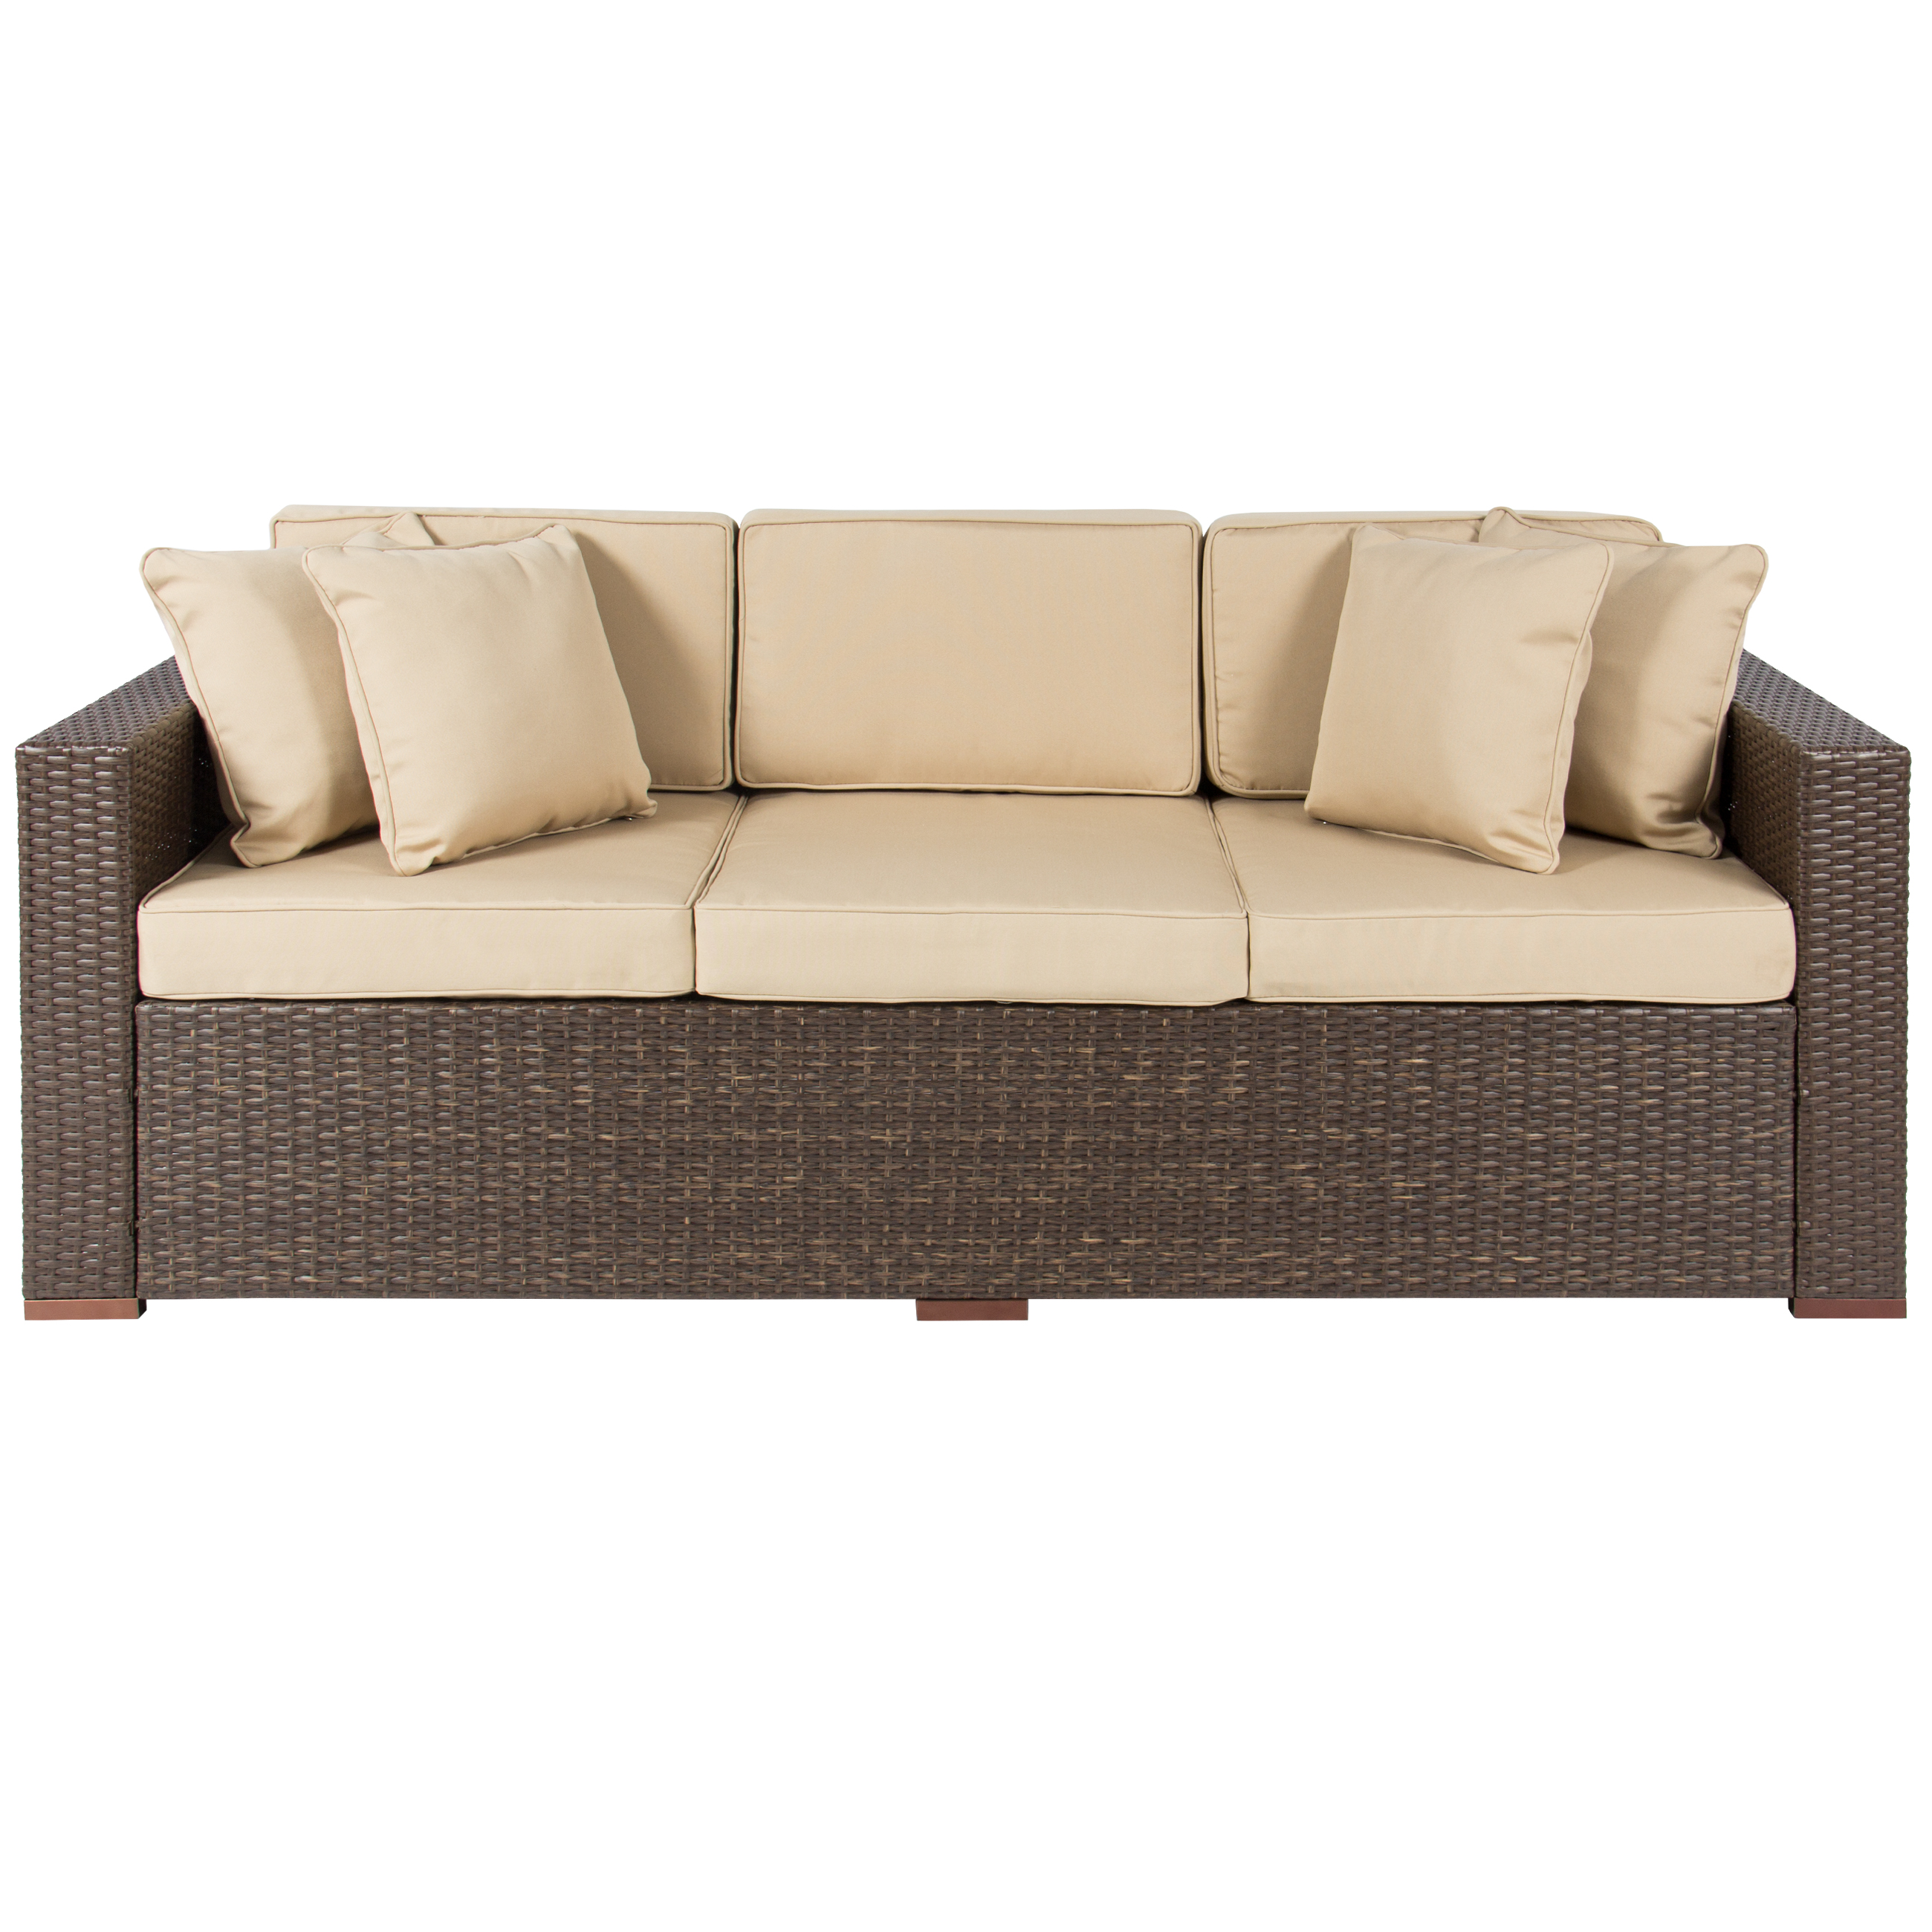 Outdoor Wicker Patio Furniture Sofa 3 Seater Luxury Comfort Brown Wicker Couch Ebay